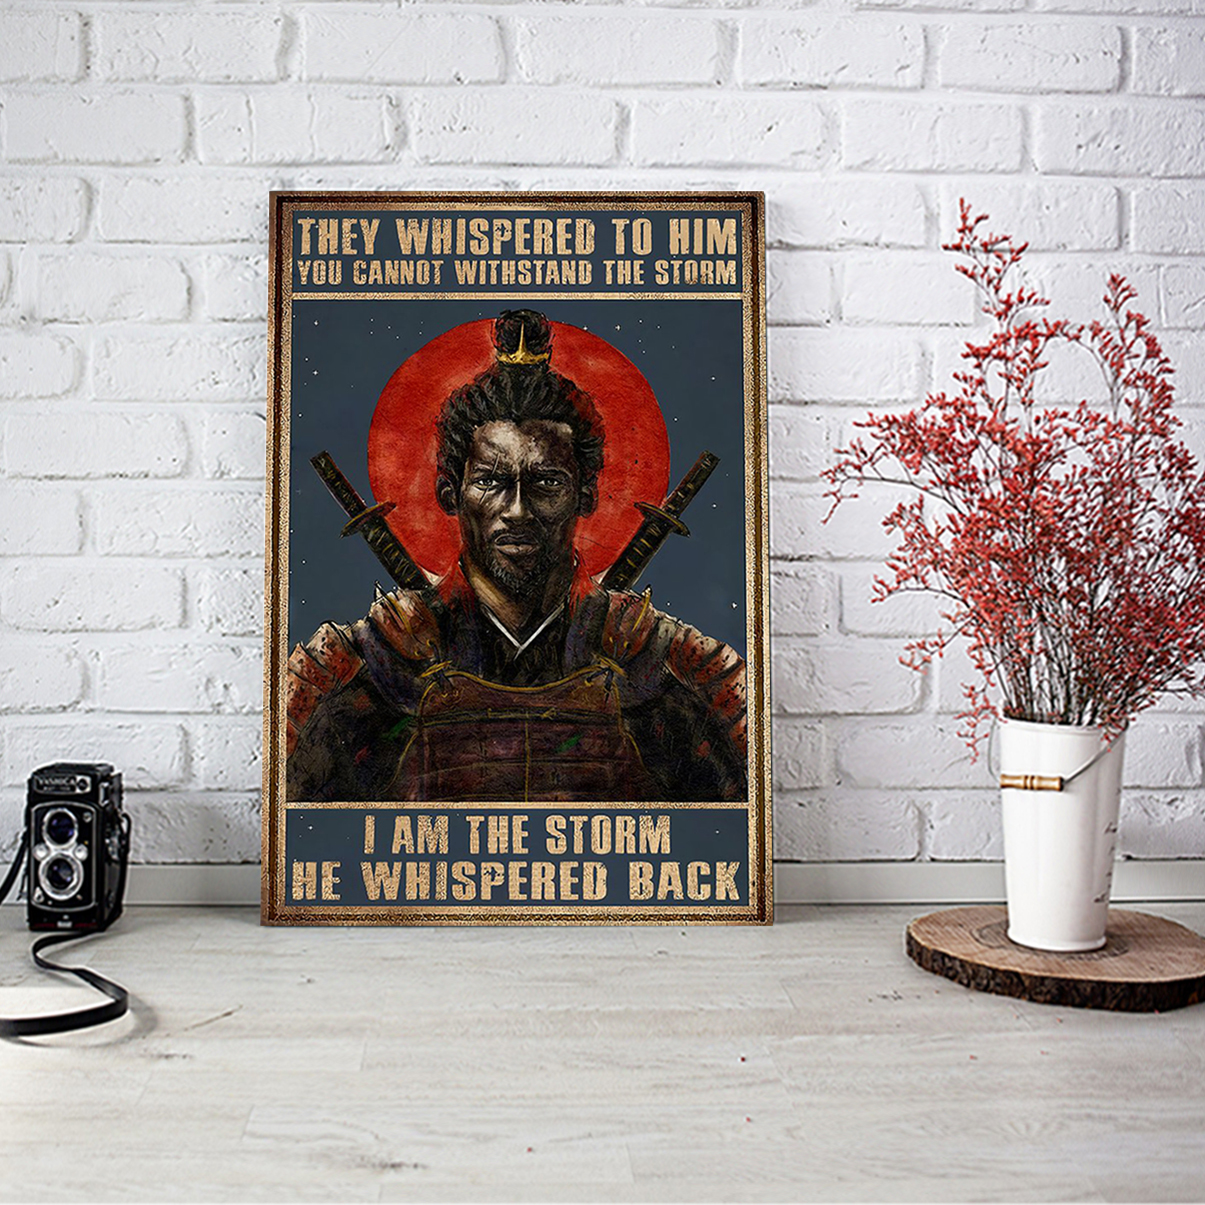 Samurai they whispered to him you cannot withstand the storm poster A1